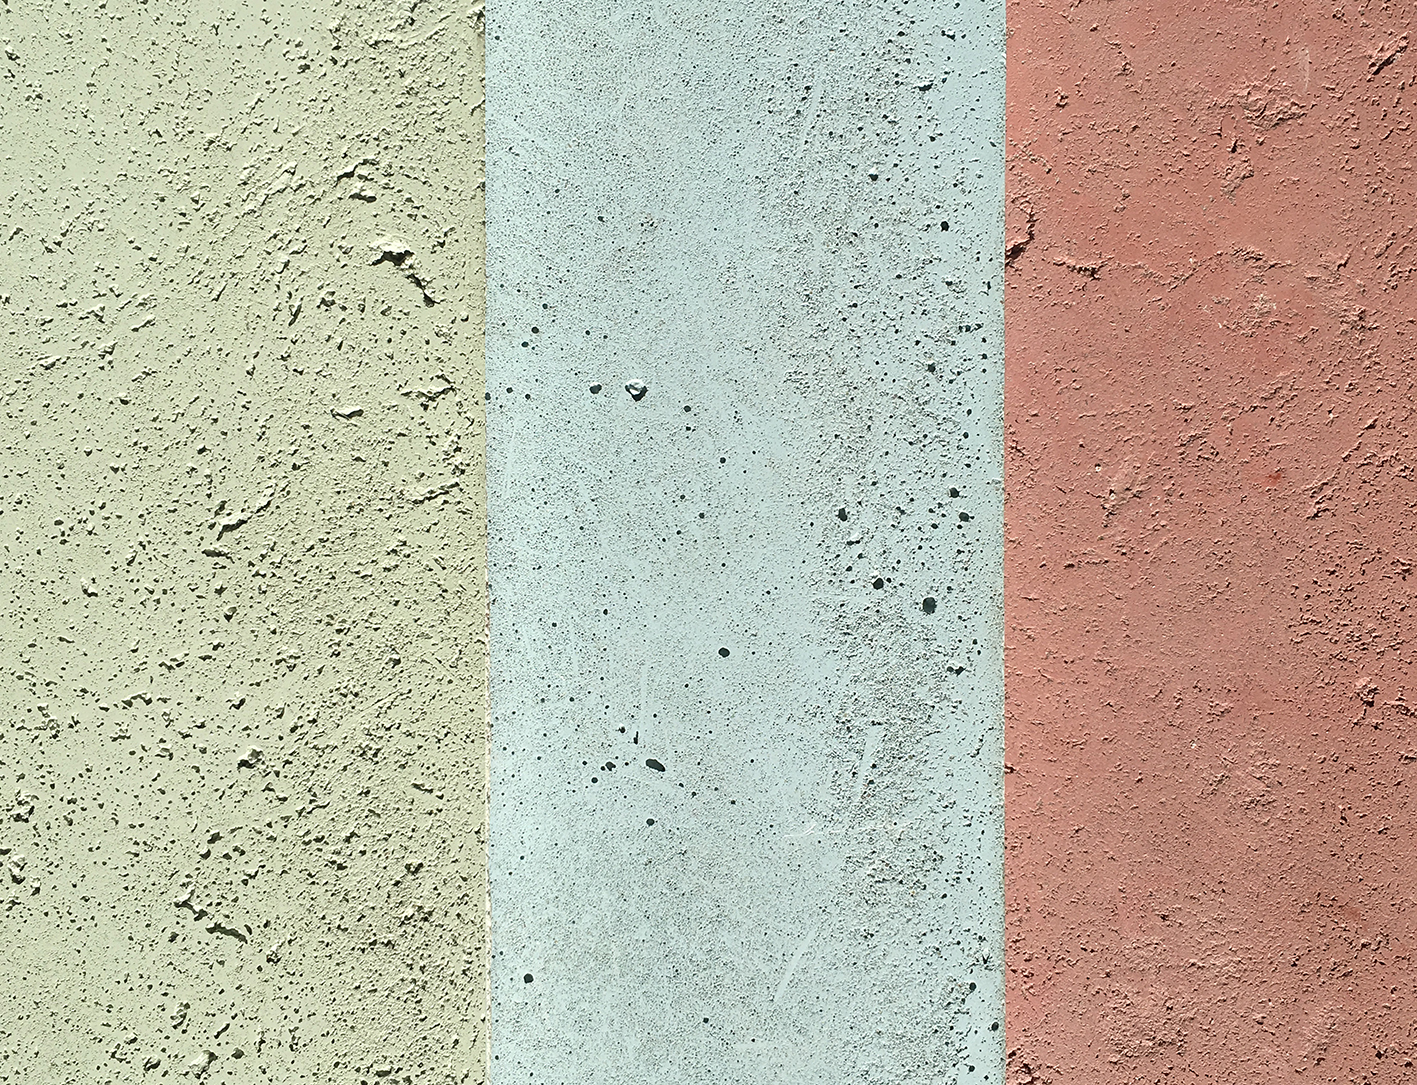 Coloured concrete samples from Forma Studios